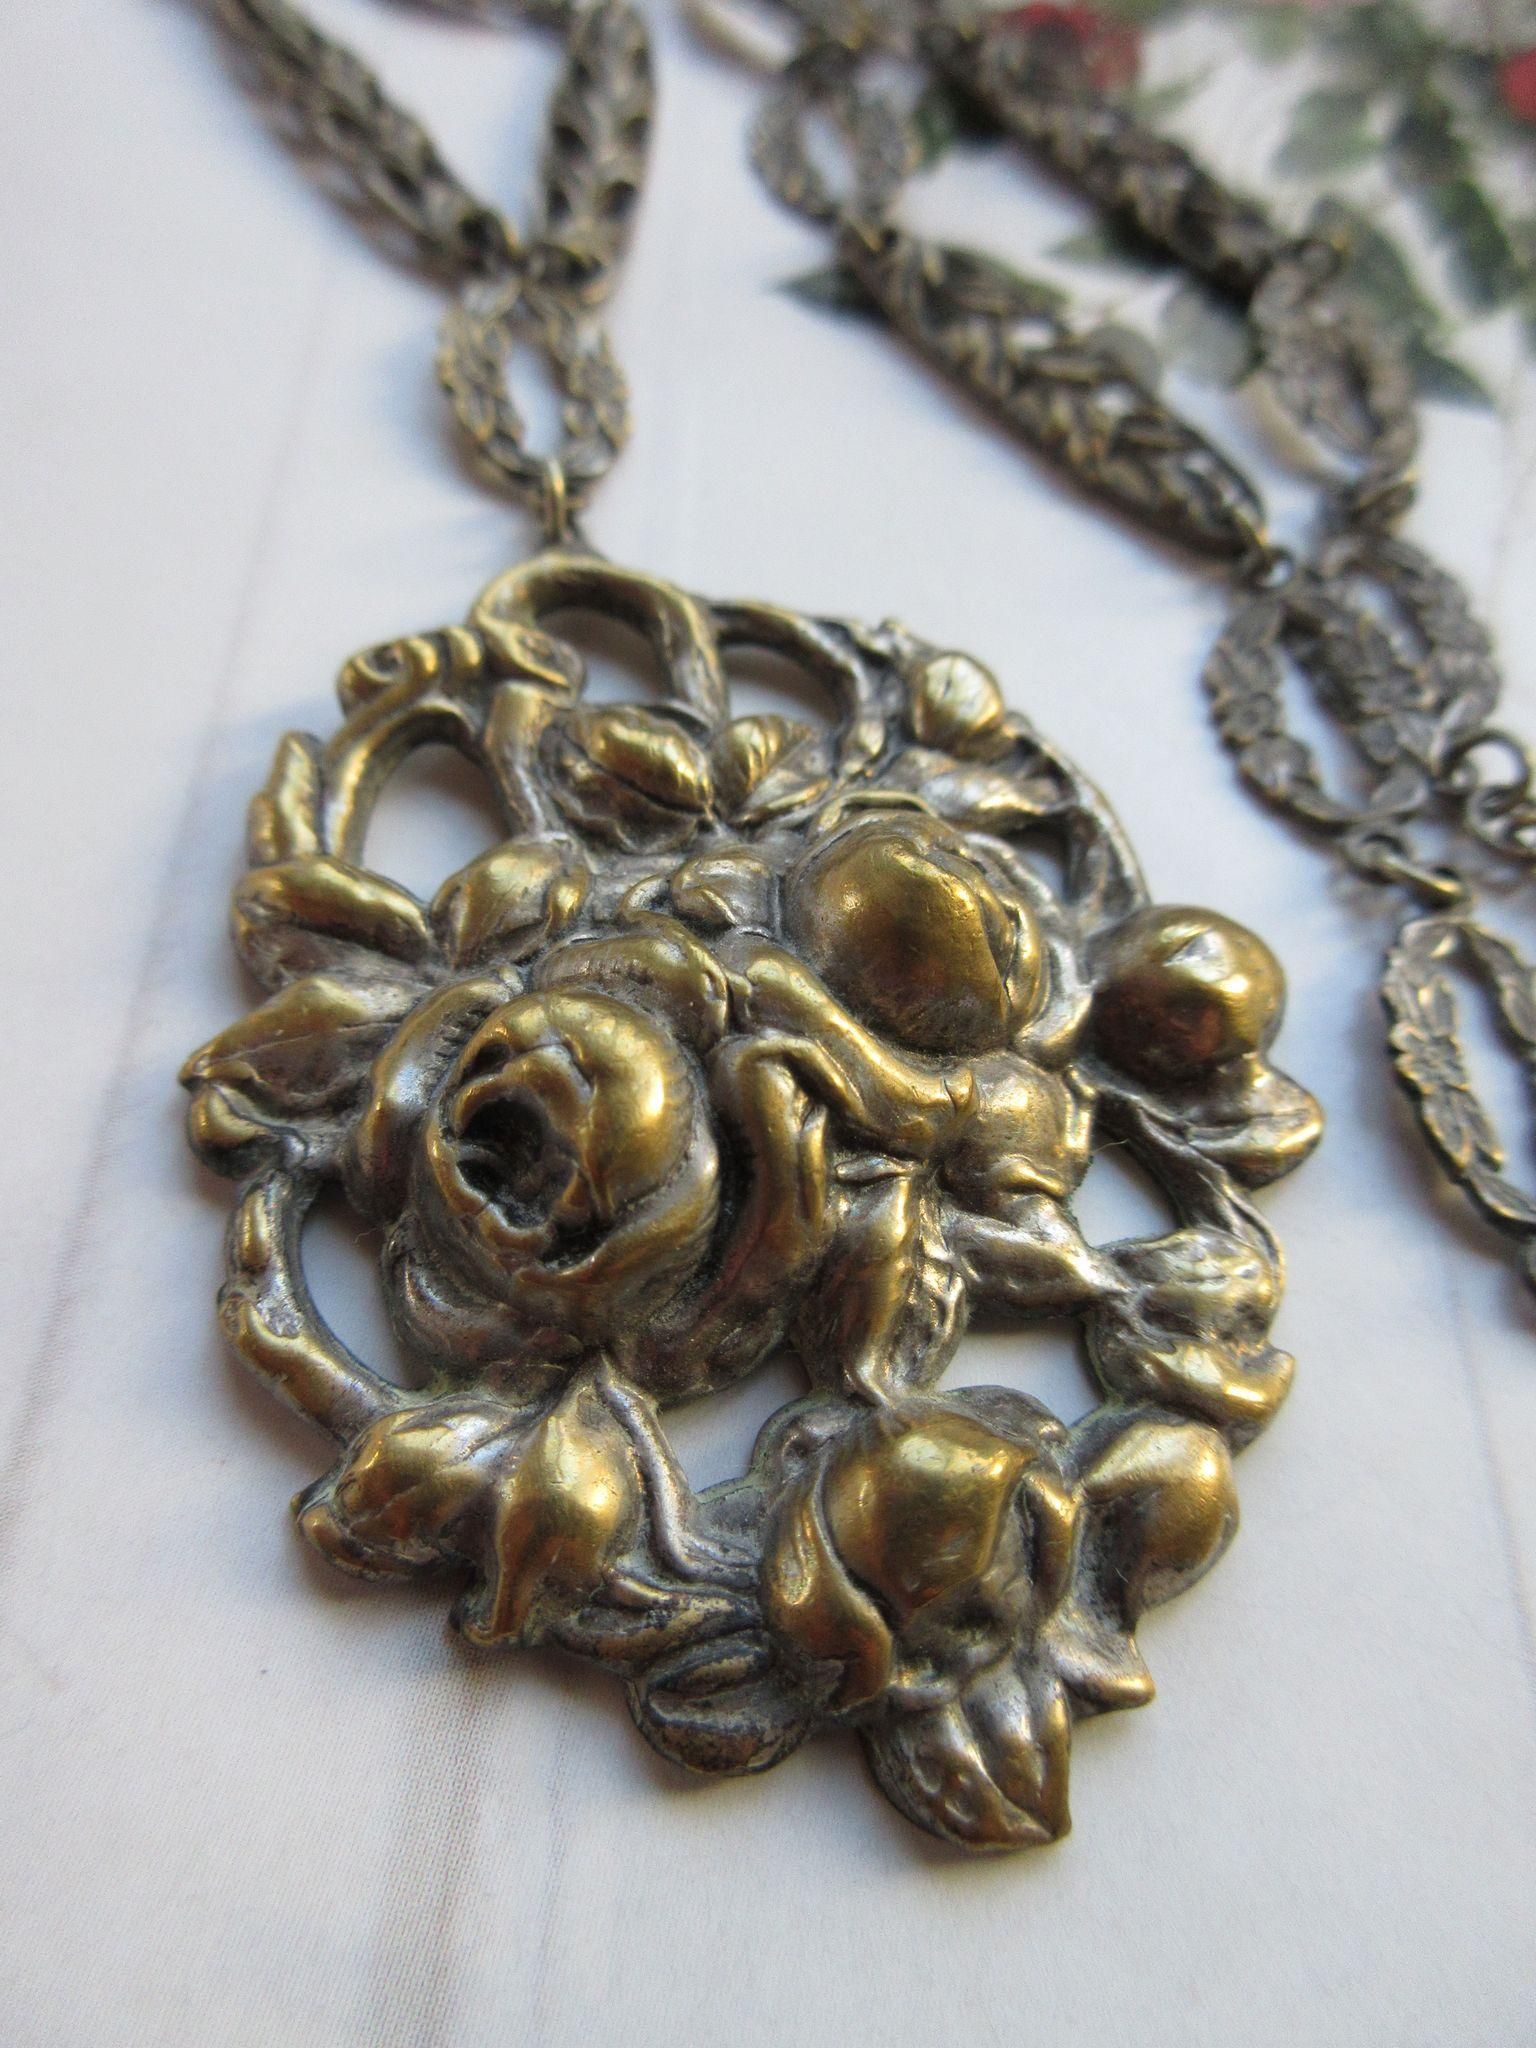 Vintage 1930s Repousse Roses Necklace